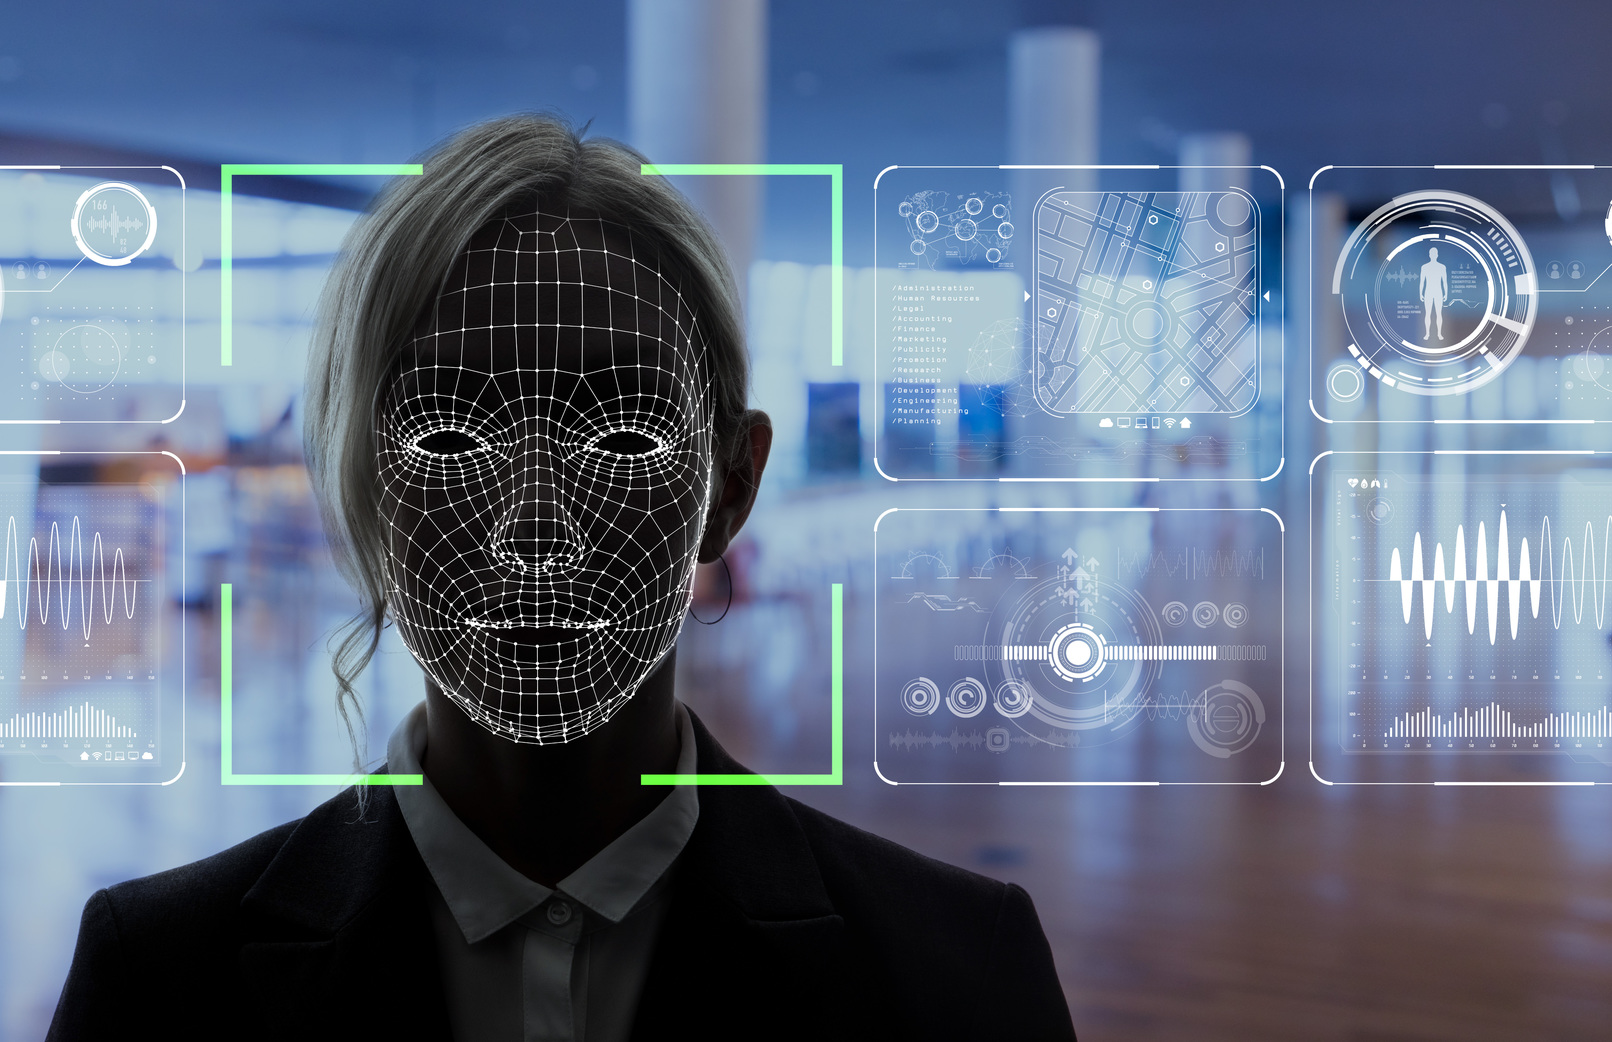 FBI and ICE Performing Facial-Recognition Searches with the Help of Driver's License Photos